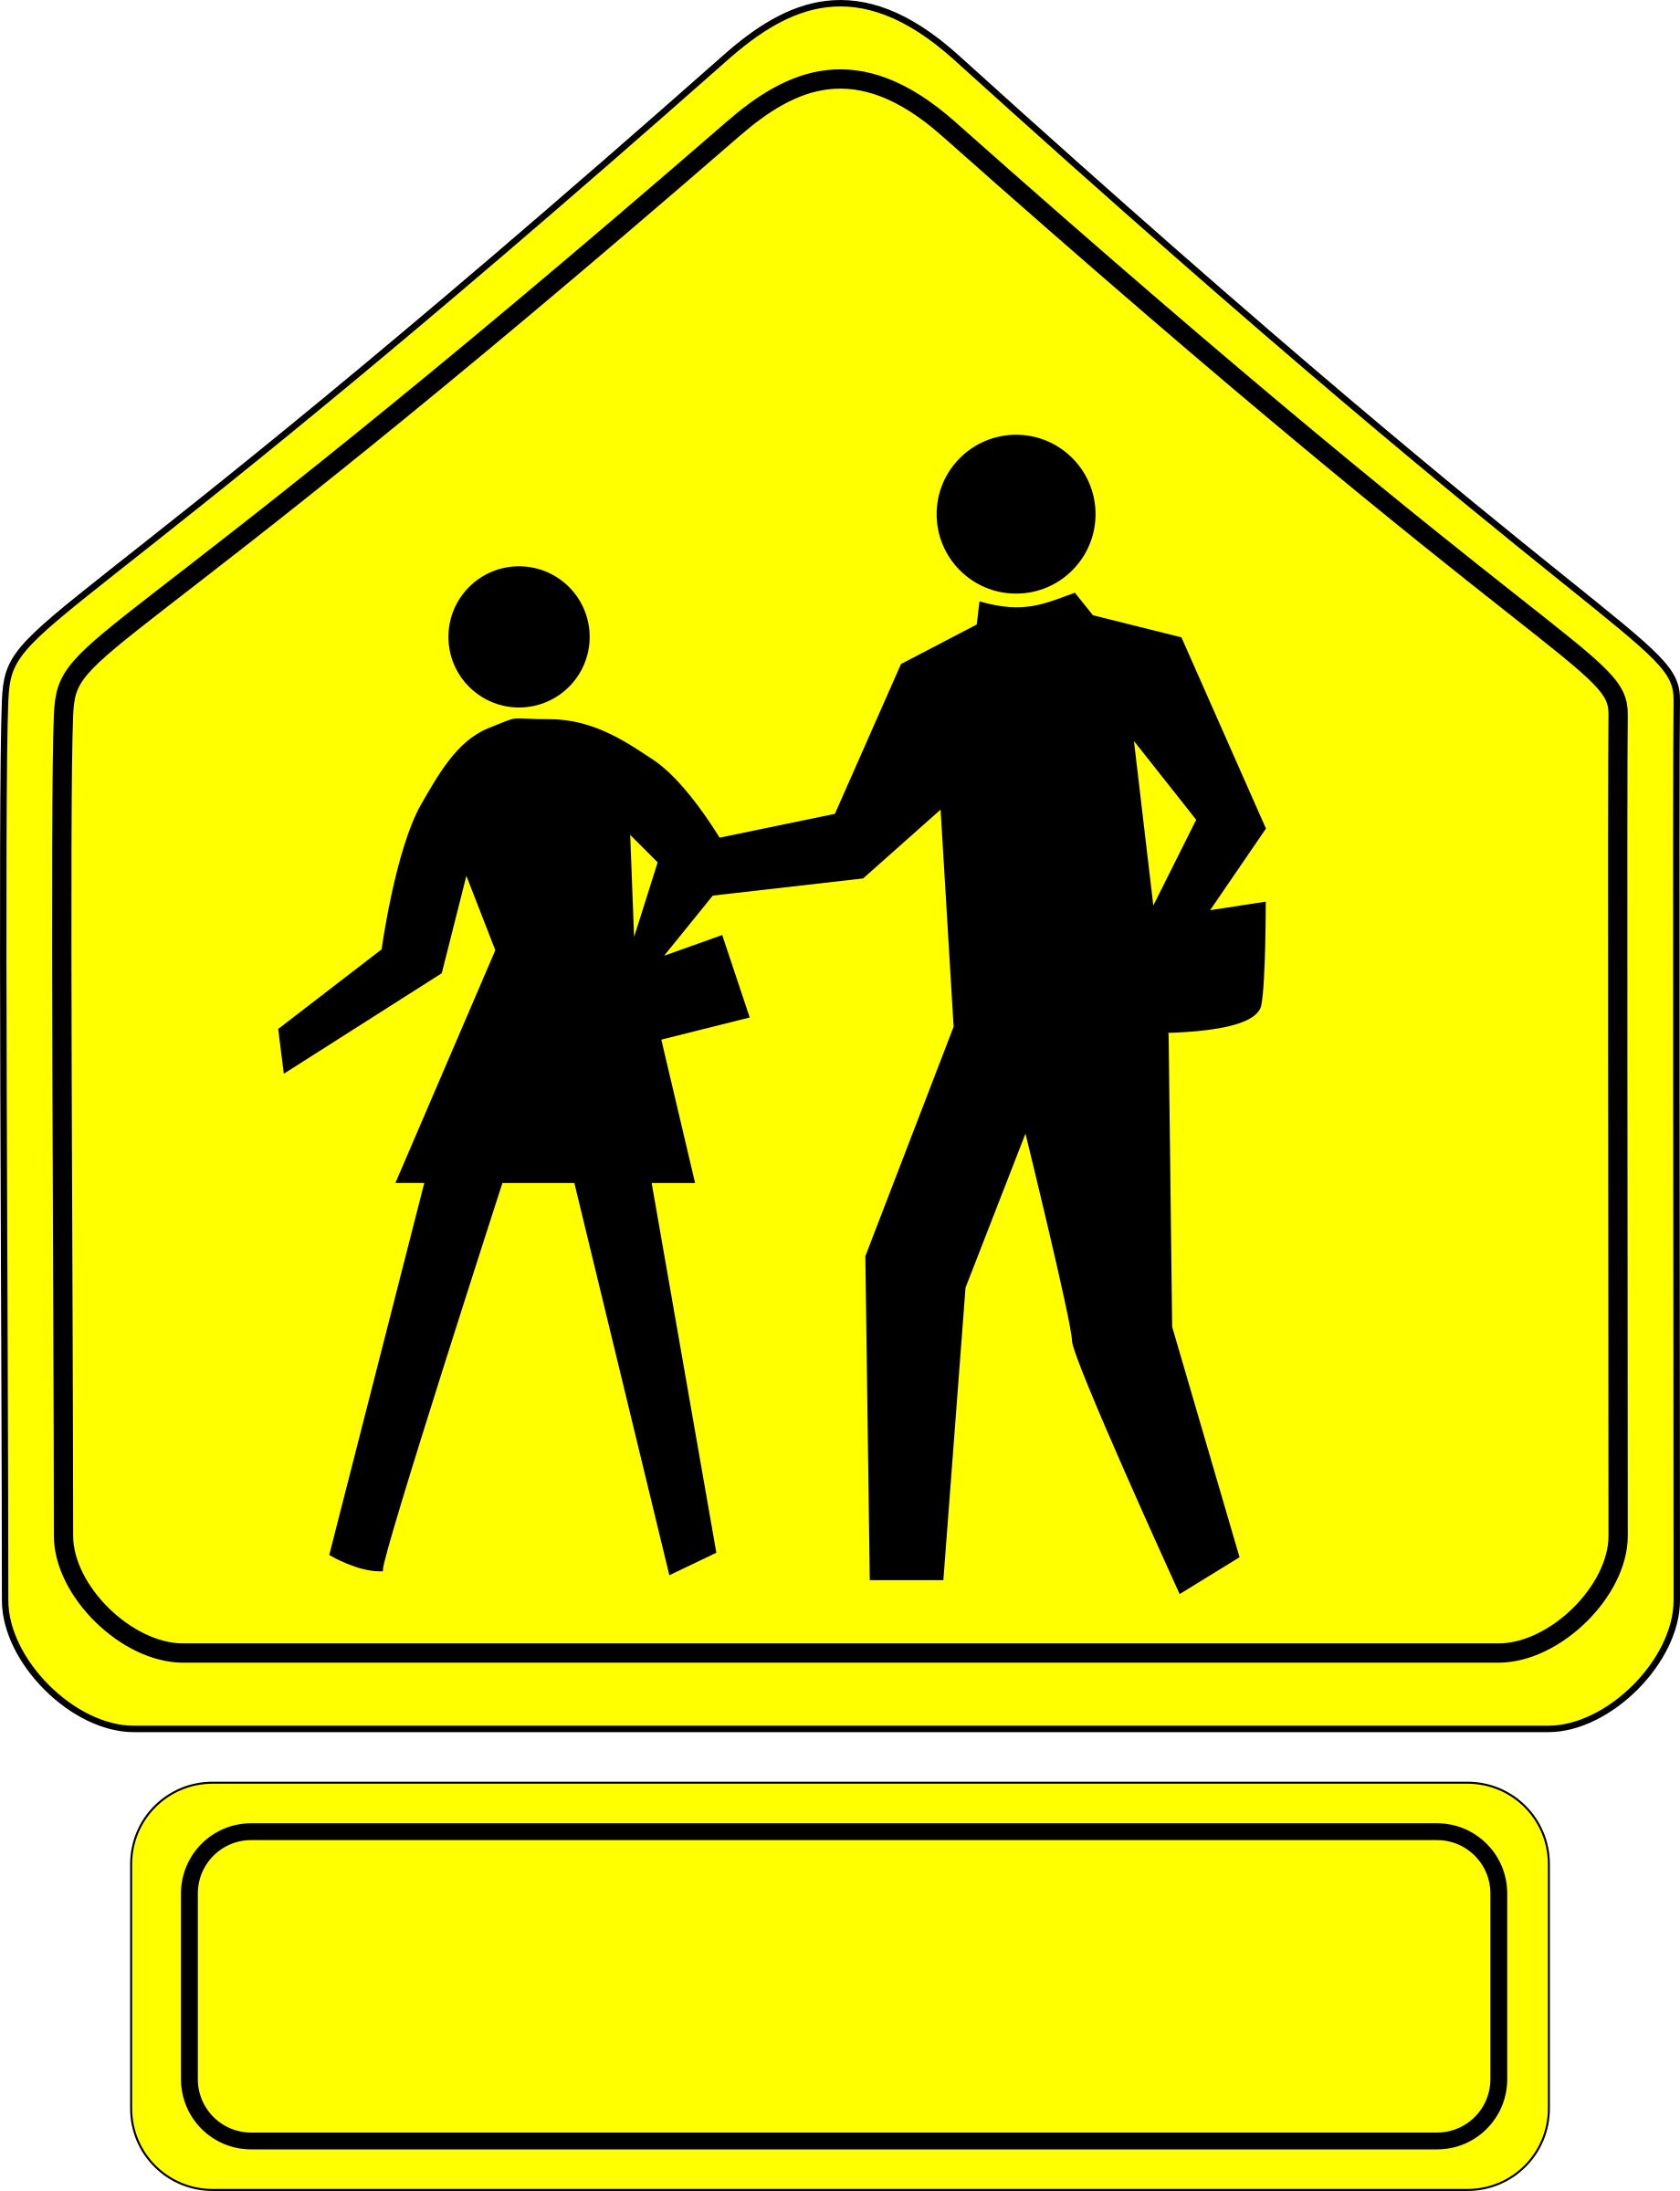 School Crossing Caution by algotruneman